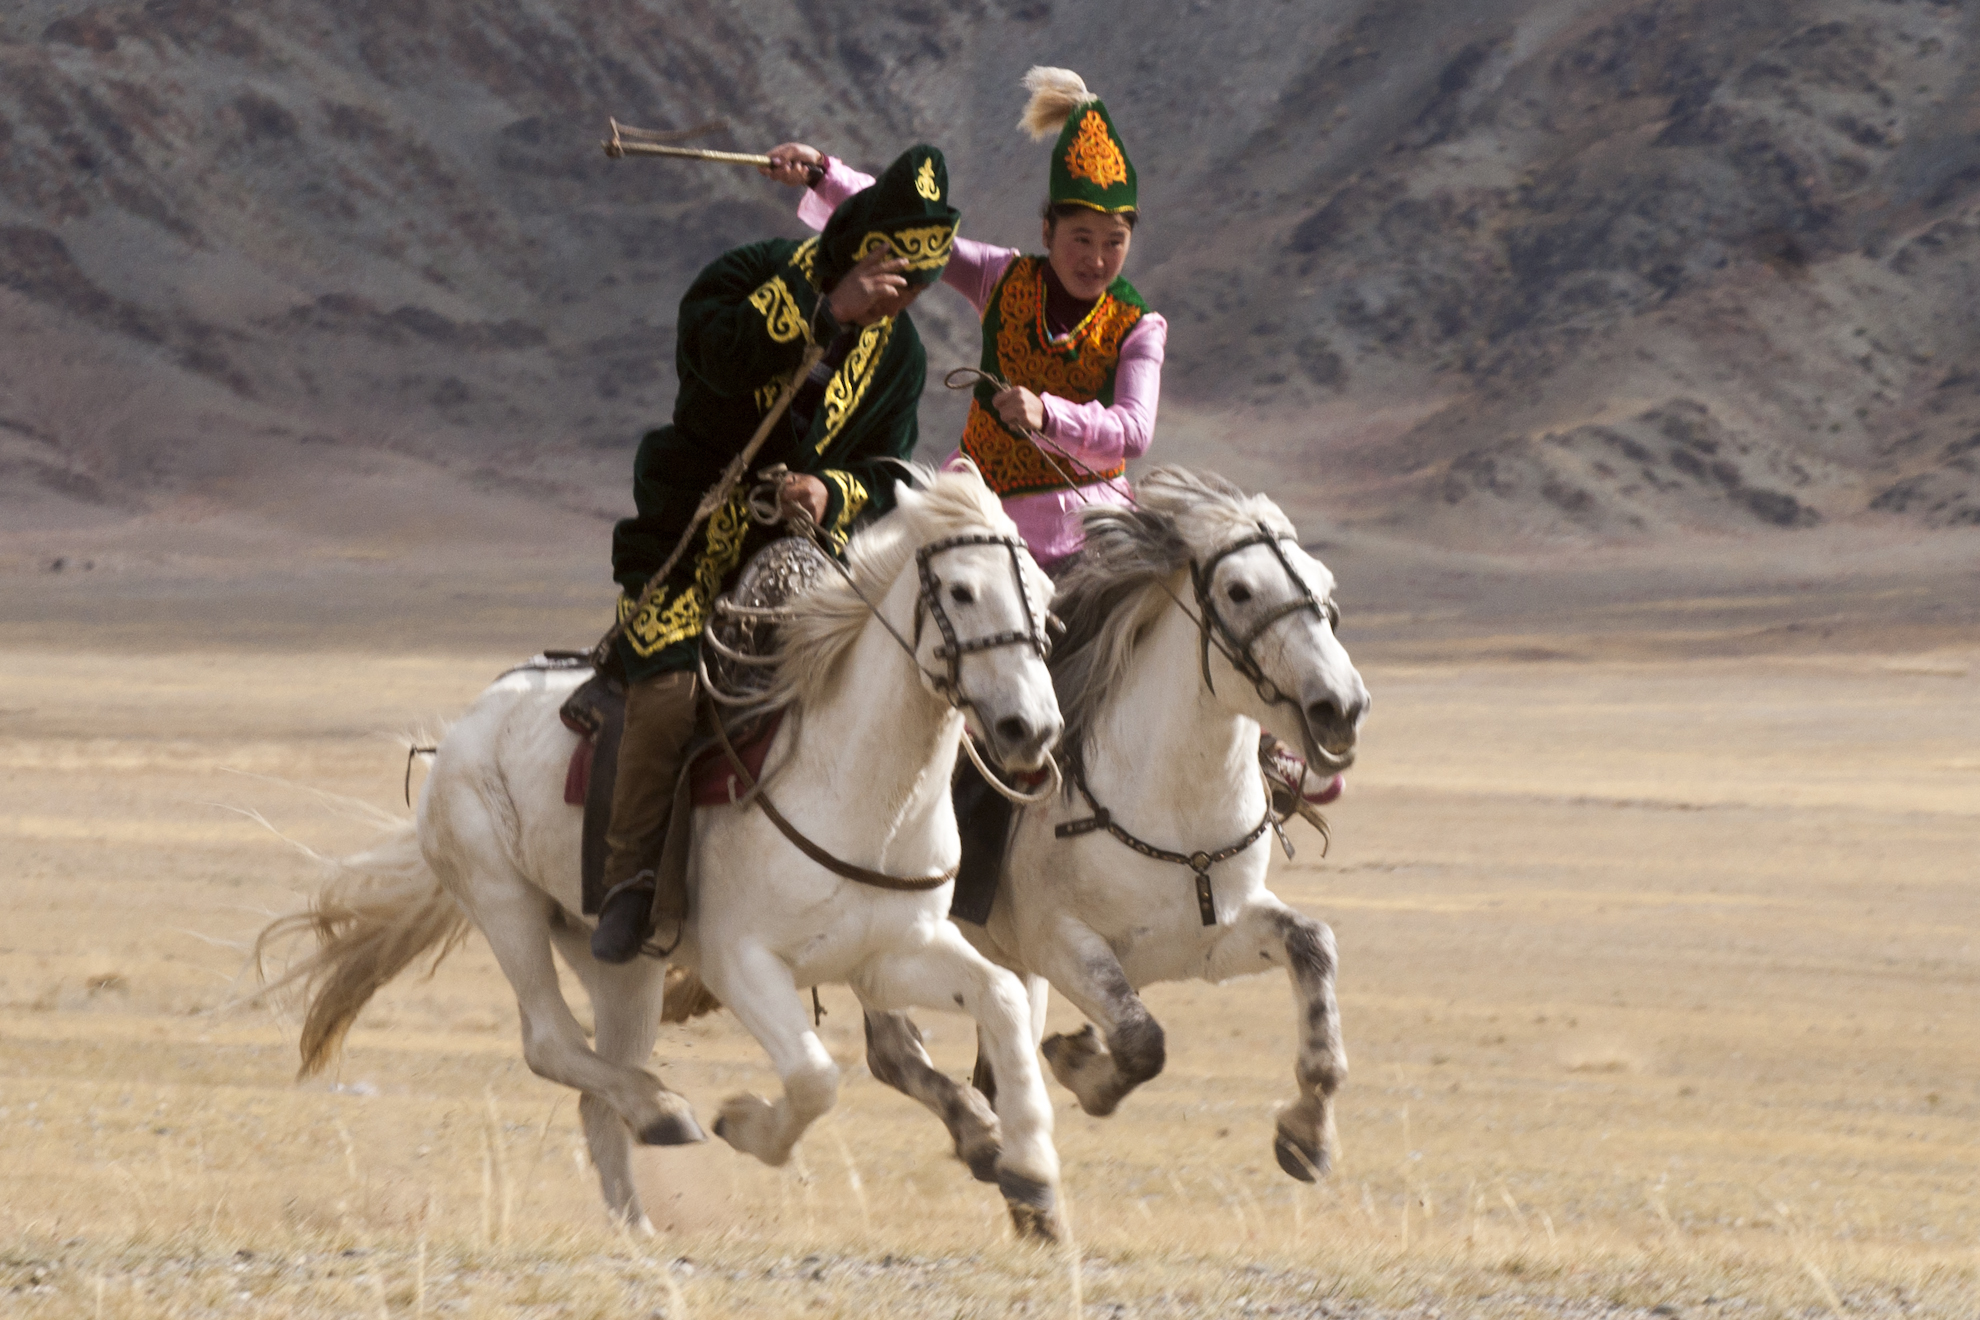 Mongolia: Golden Eagle Festival